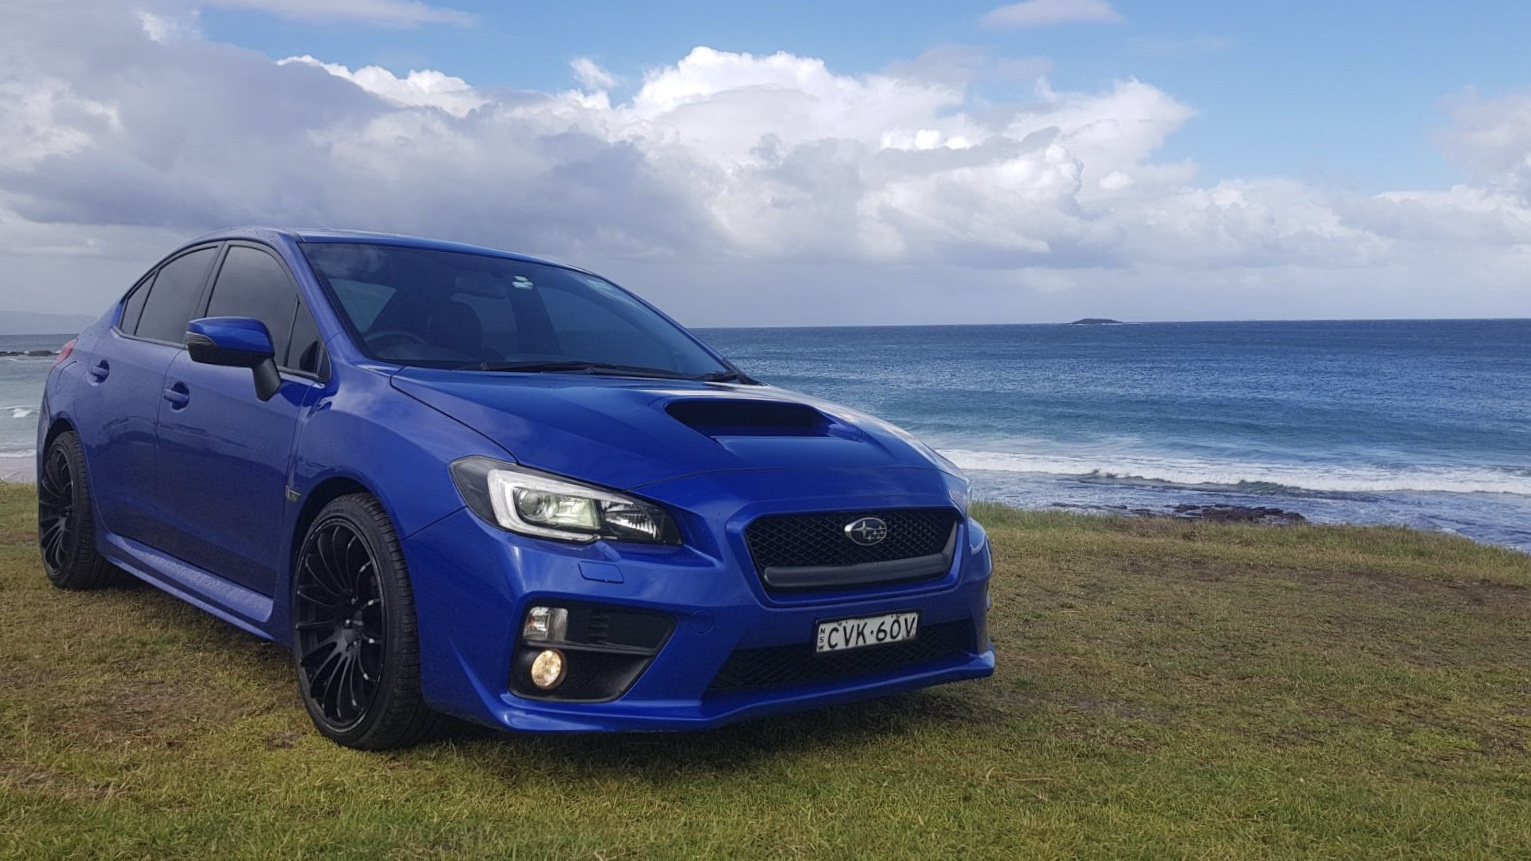 Picture of Anthony's 2014 Subaru WRX